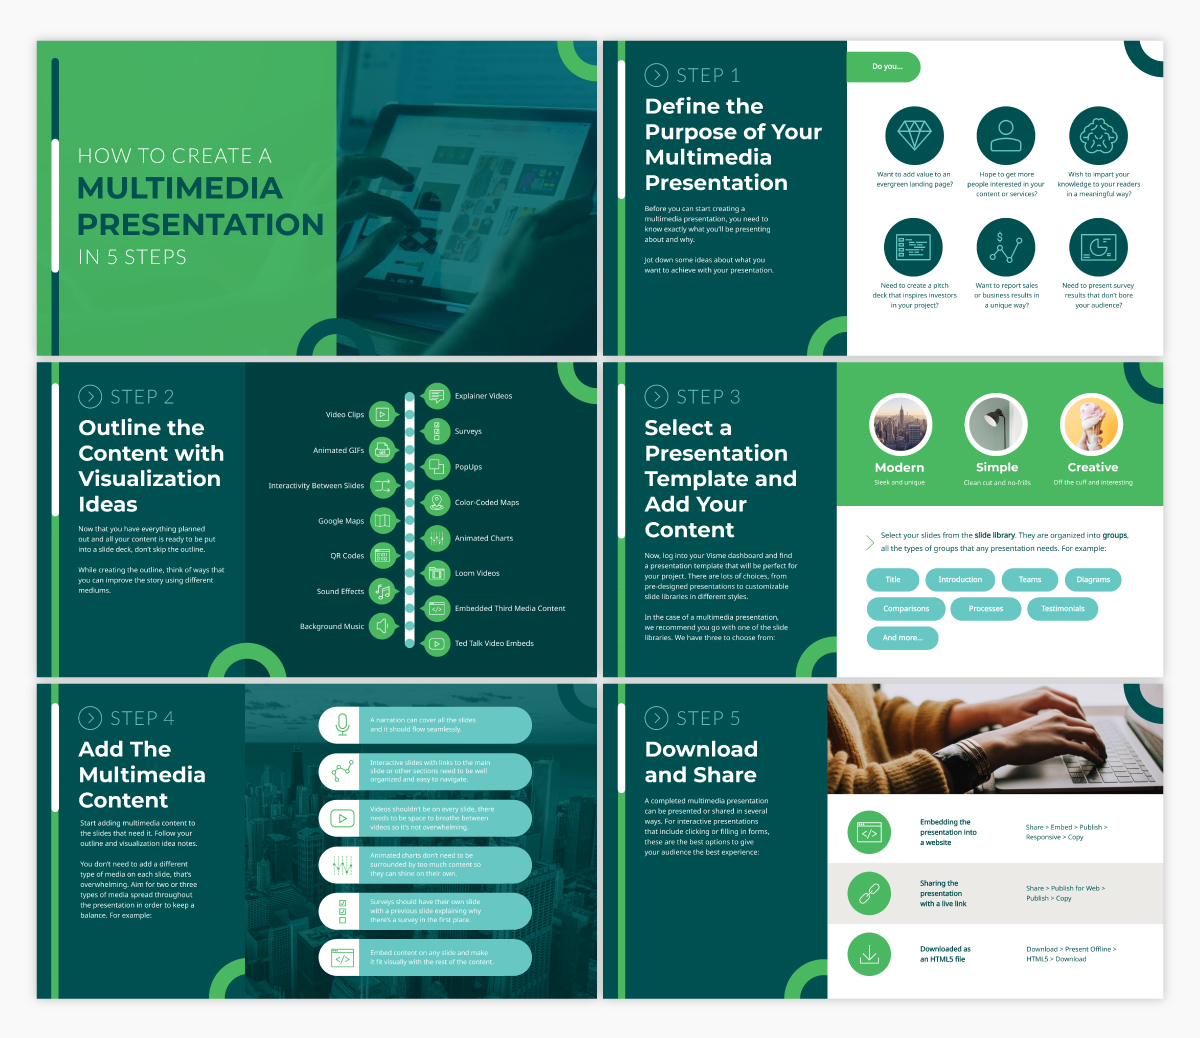 An informational presentation template available in Visme.